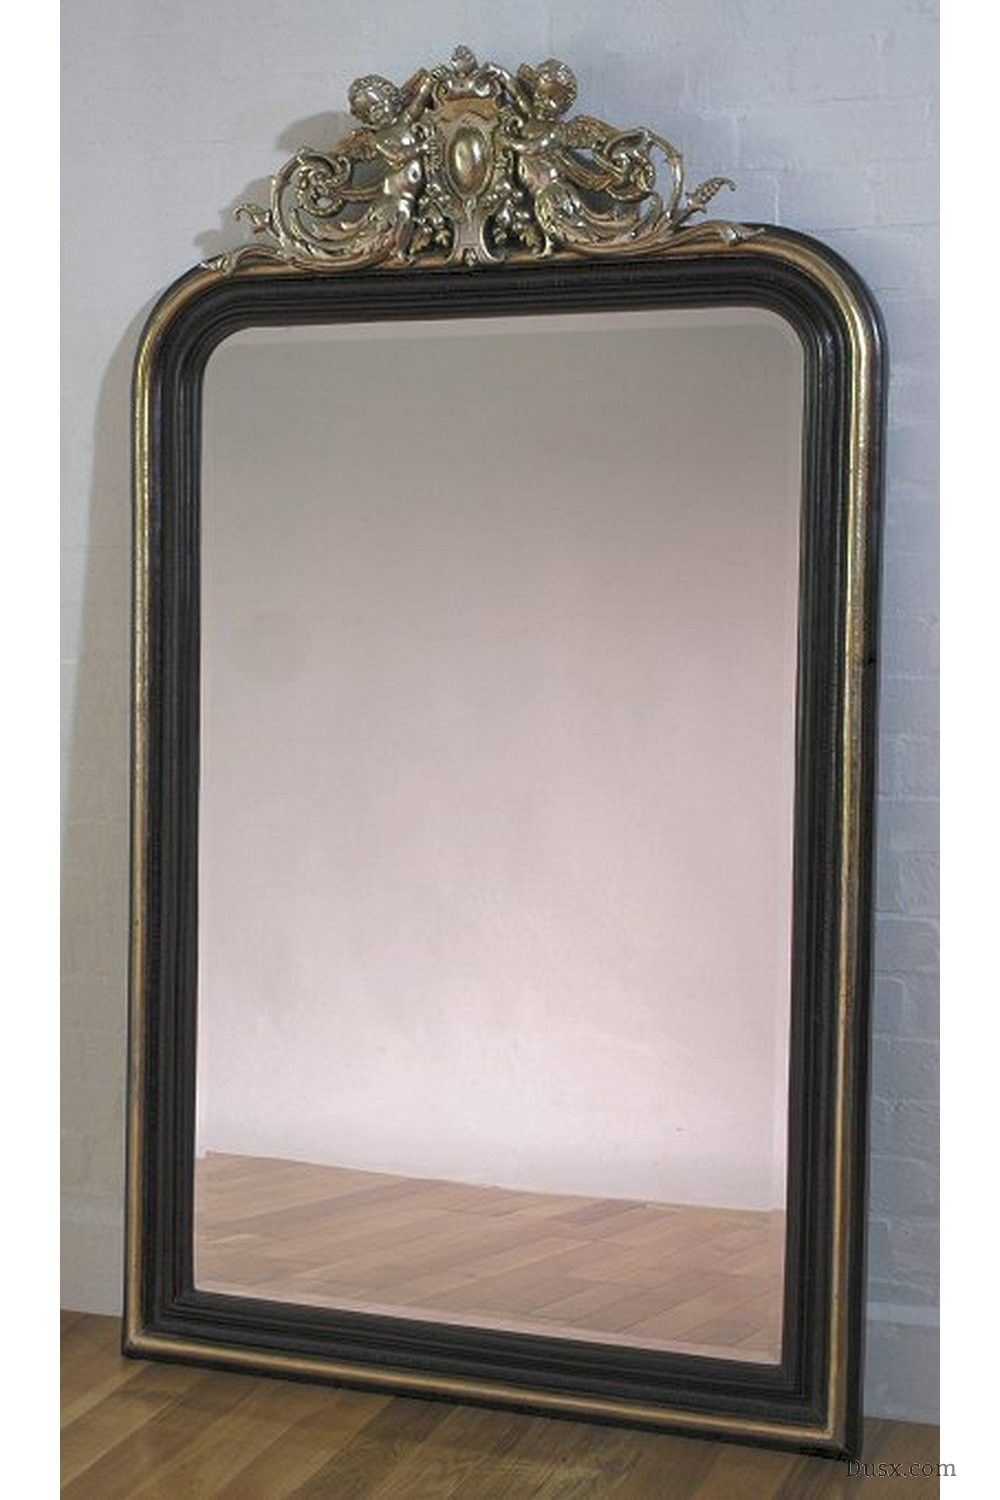 Cherubim French Rococo Black & Silver Bevelled Mirror: For sale at ...